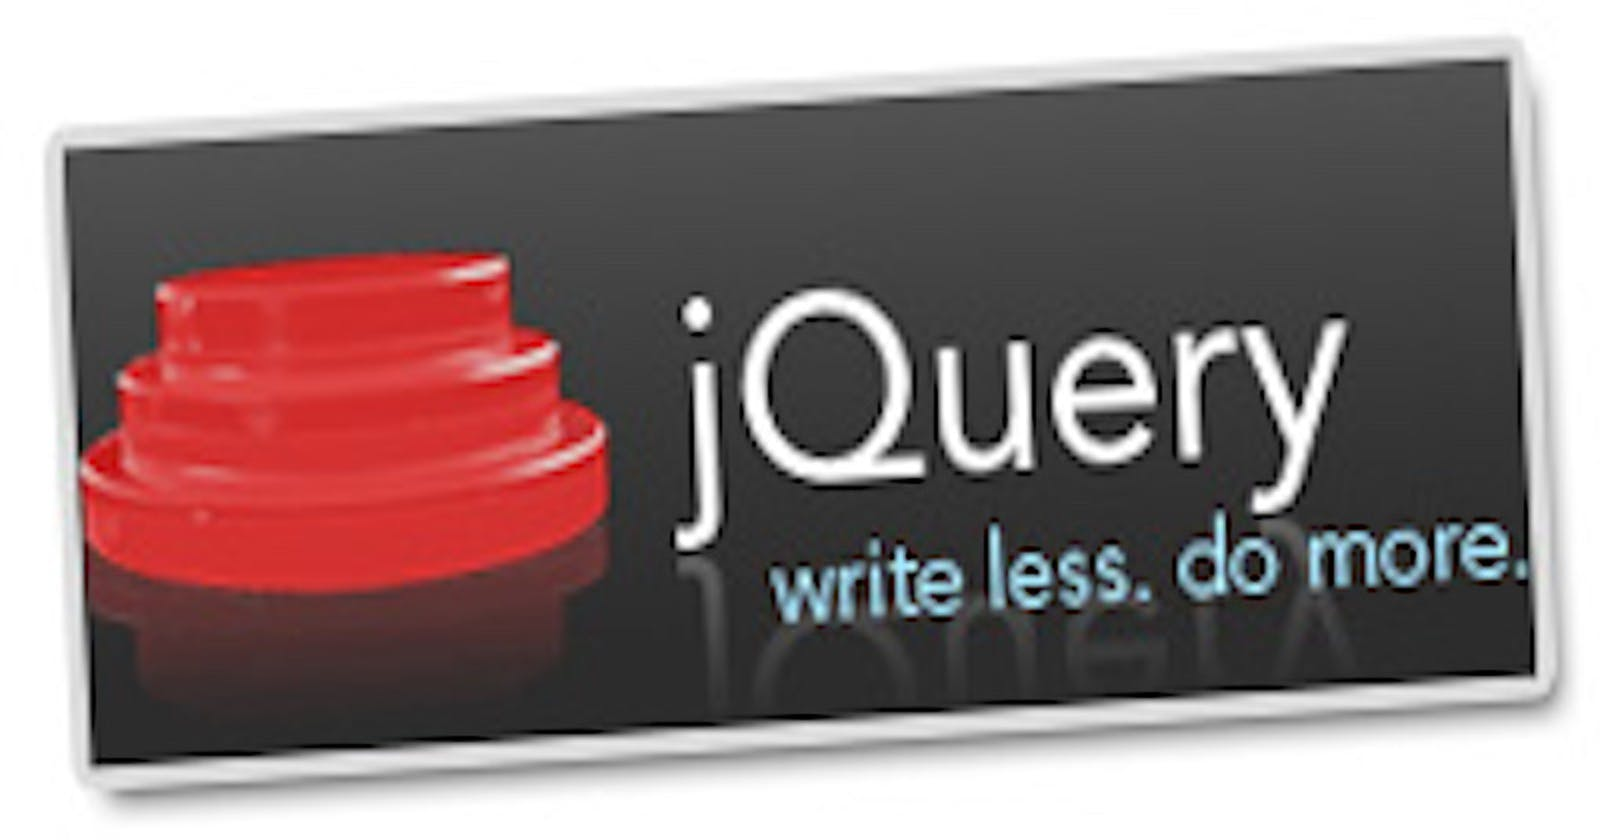 How to check if plugin is loaded in jQuery